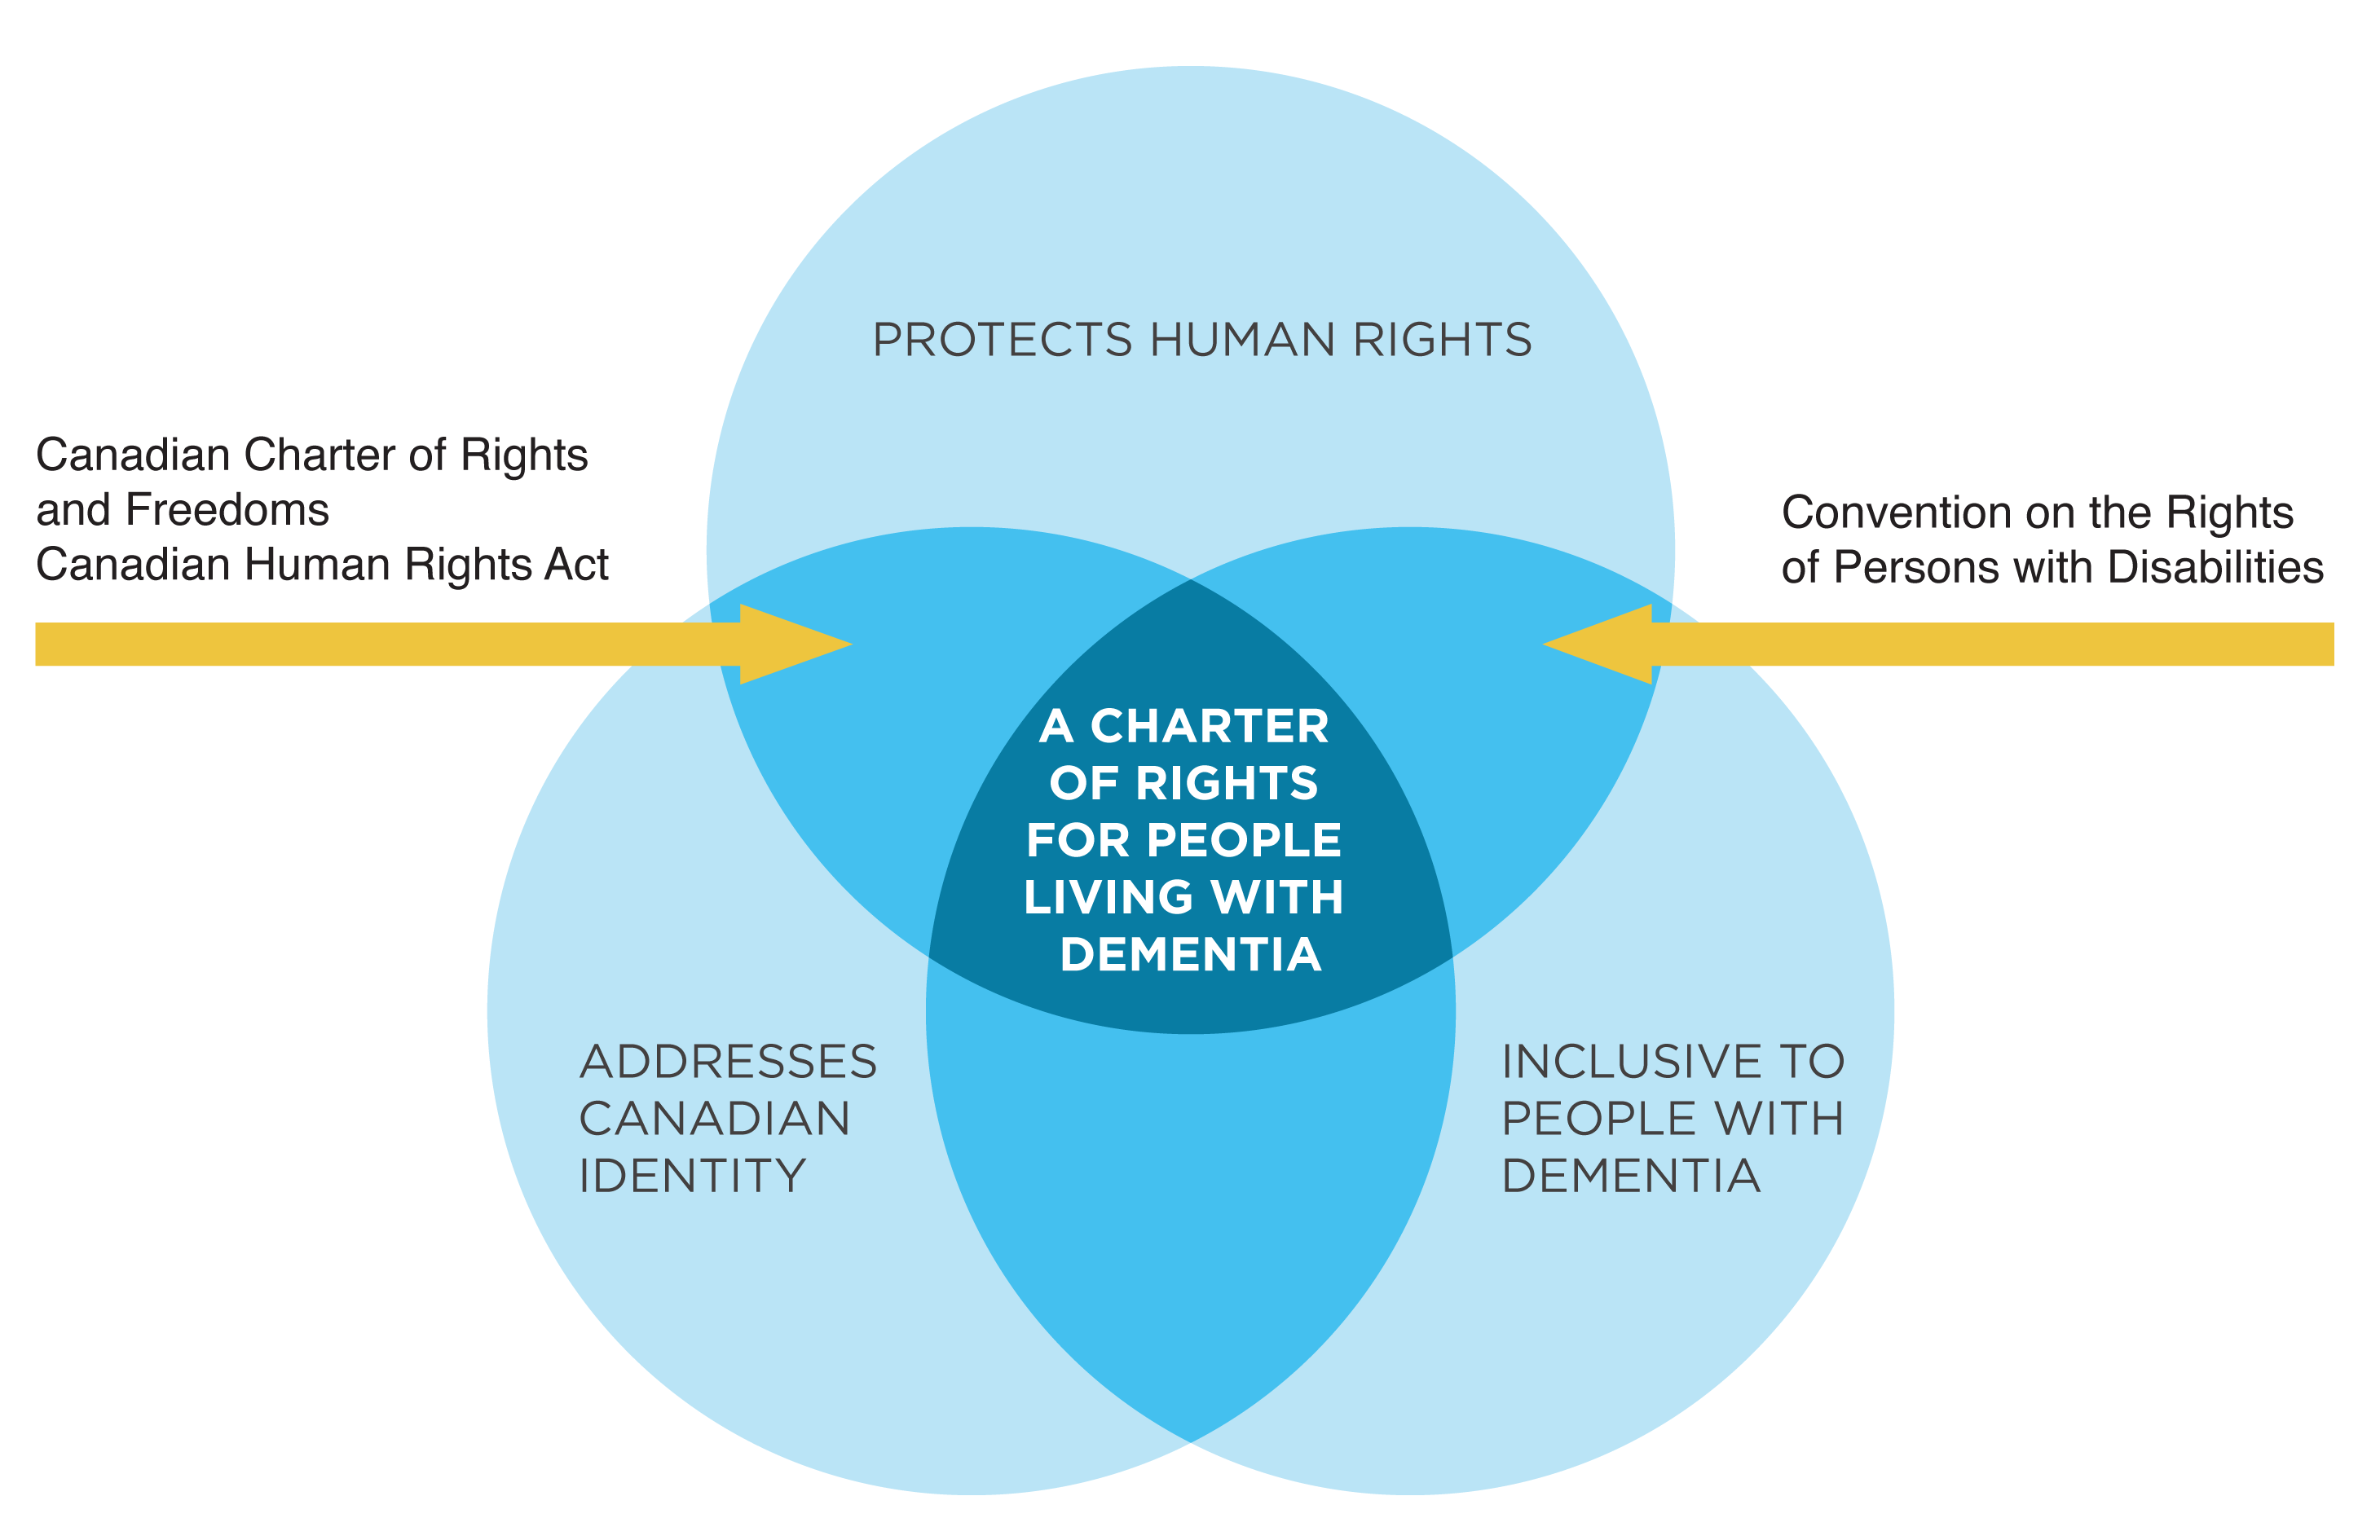 A venn diagram of human rights and dementia in Canada.